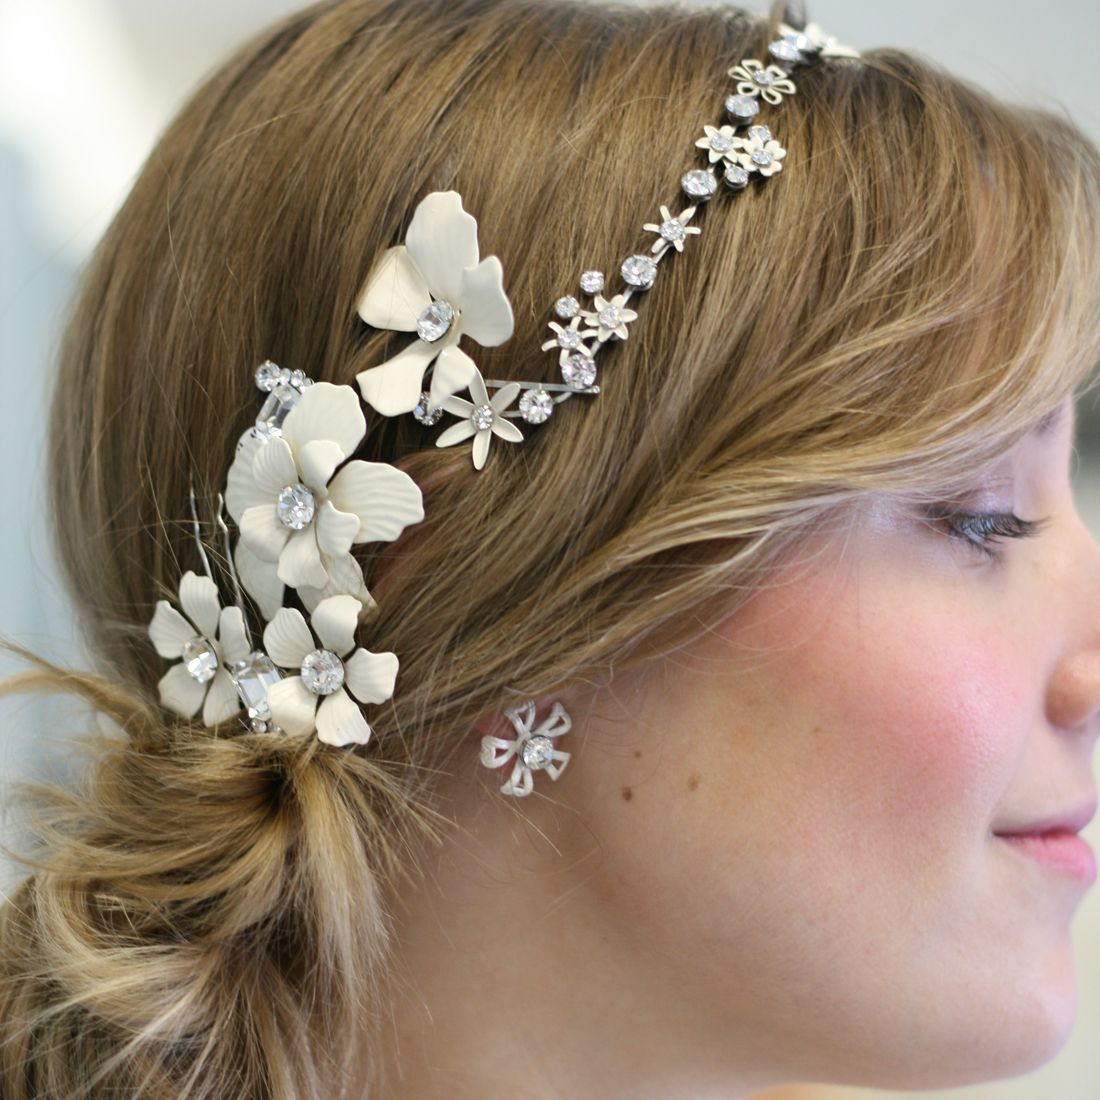 8 best images about wedding hair accessories on pinterest